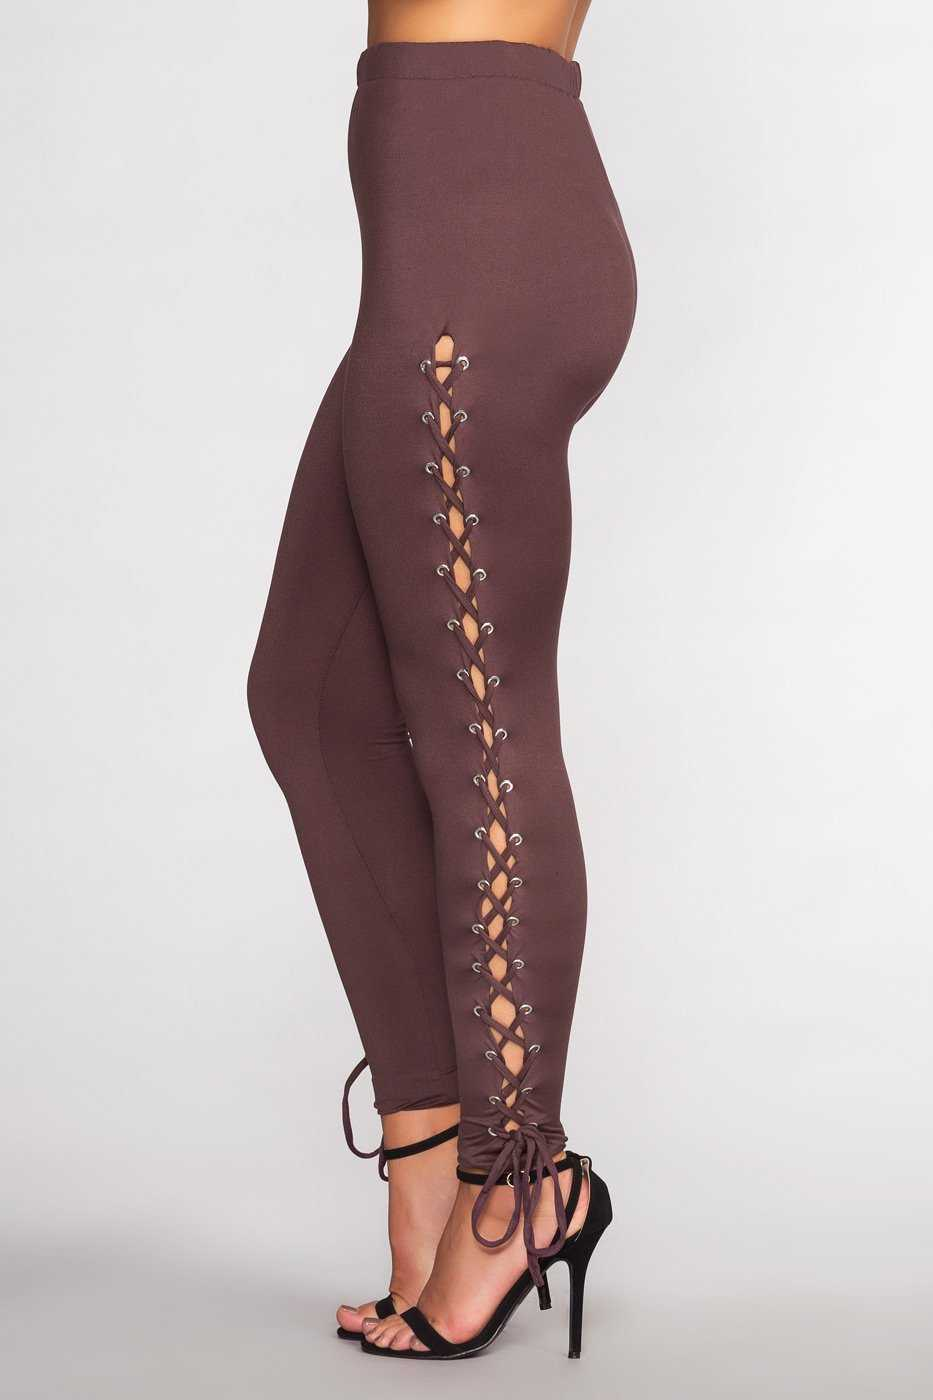 Leggings - Leave No Trace Leggings - Mauve